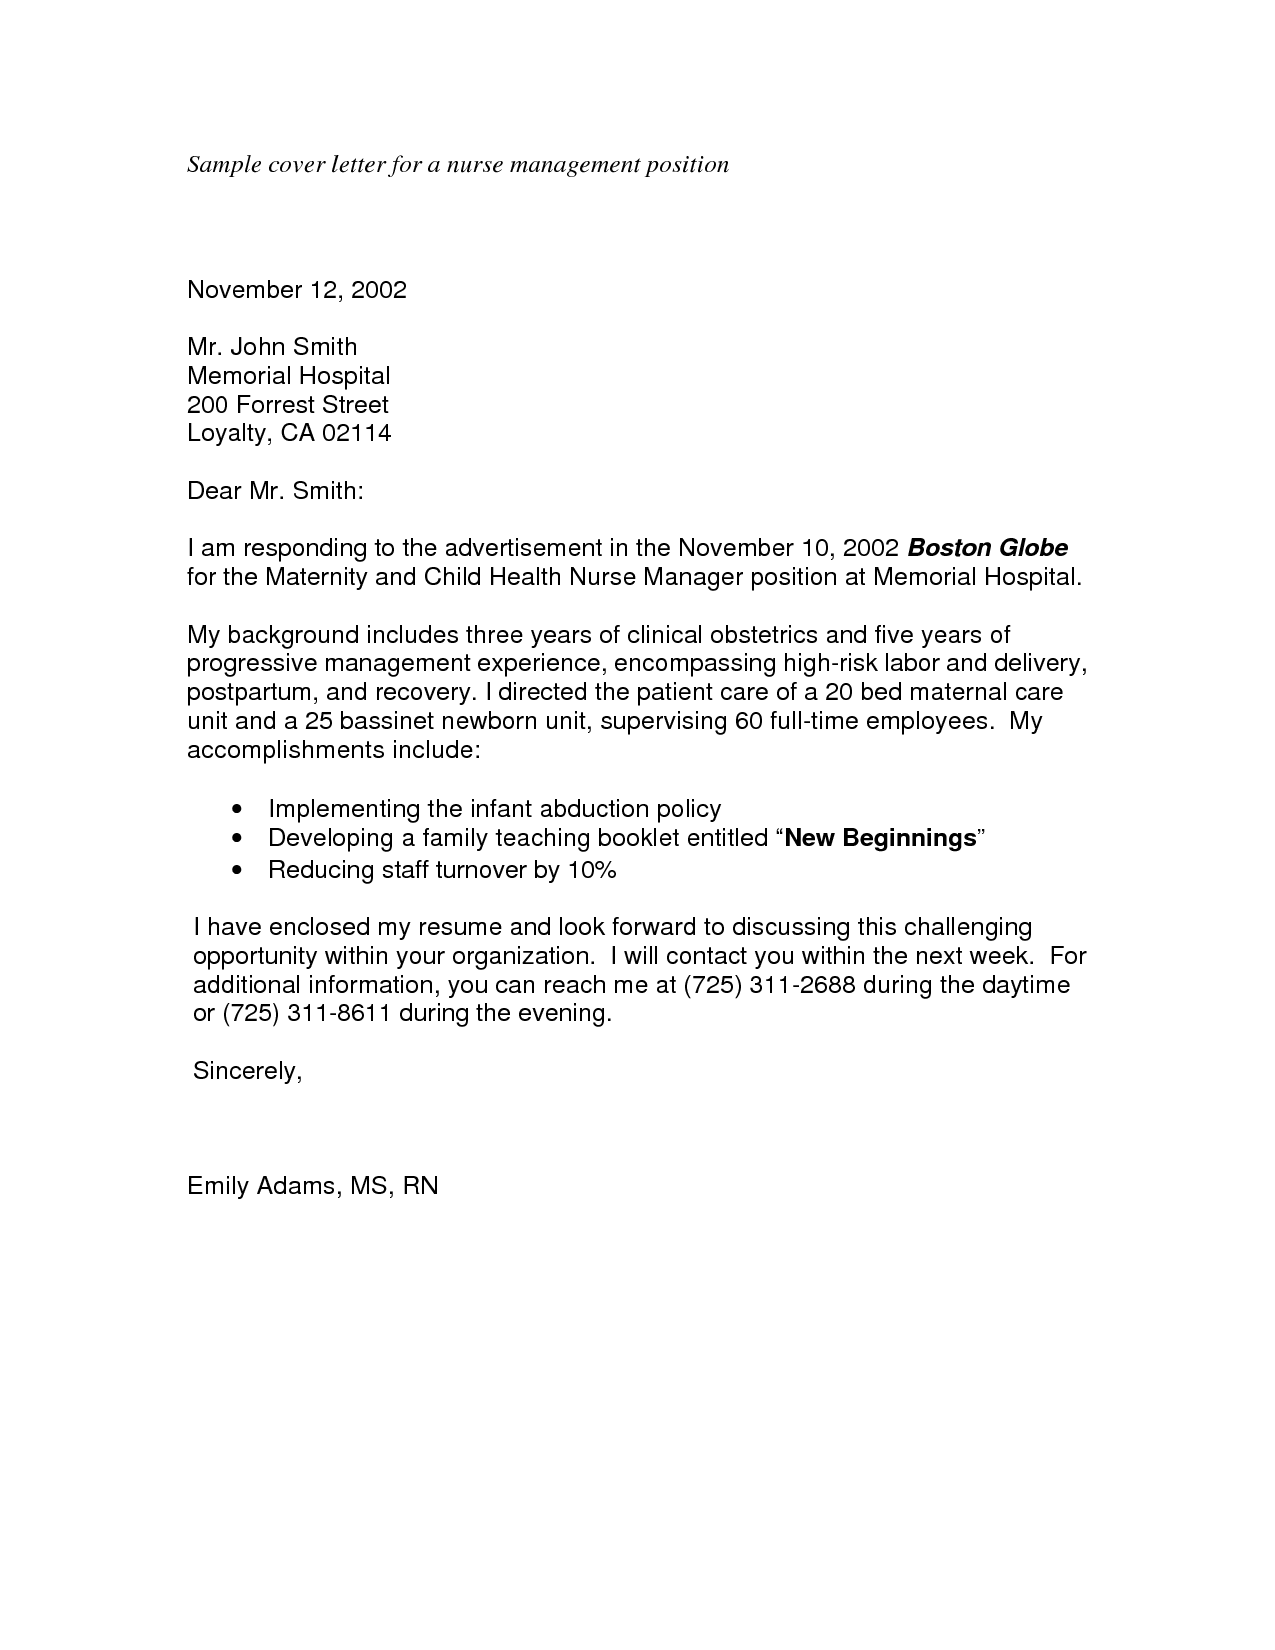 Sample Cover Letter For A Nurse Management Position Pdf Cover Letter For Resume Job Cover Letter Cover Letter Example